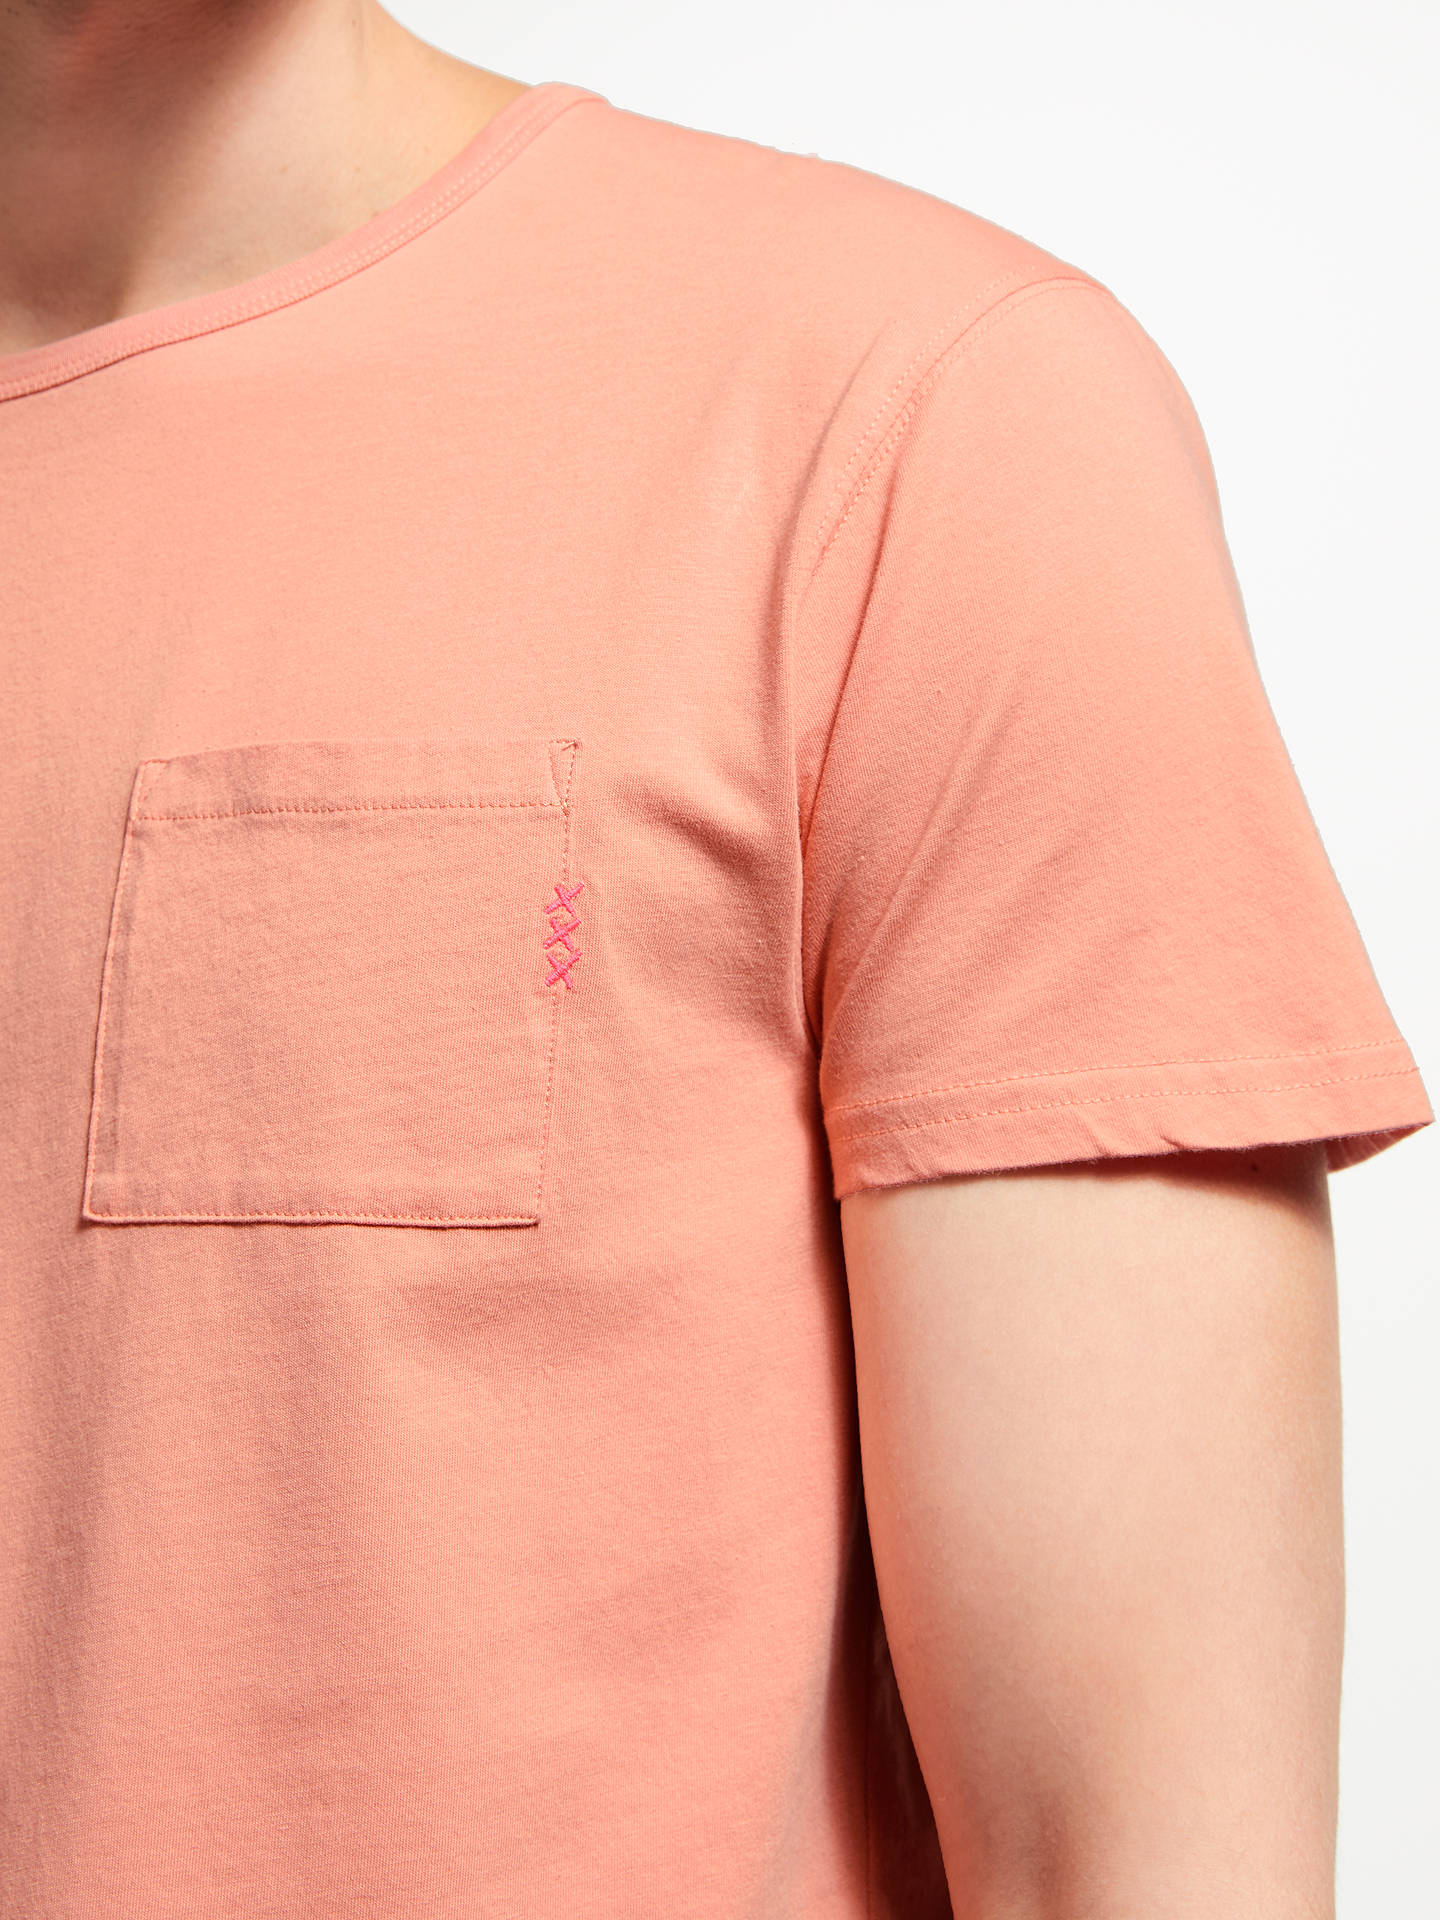 Buy Scotch & Soda Blauw Pocket T-Shirt, Pink, XL Online at johnlewis.com